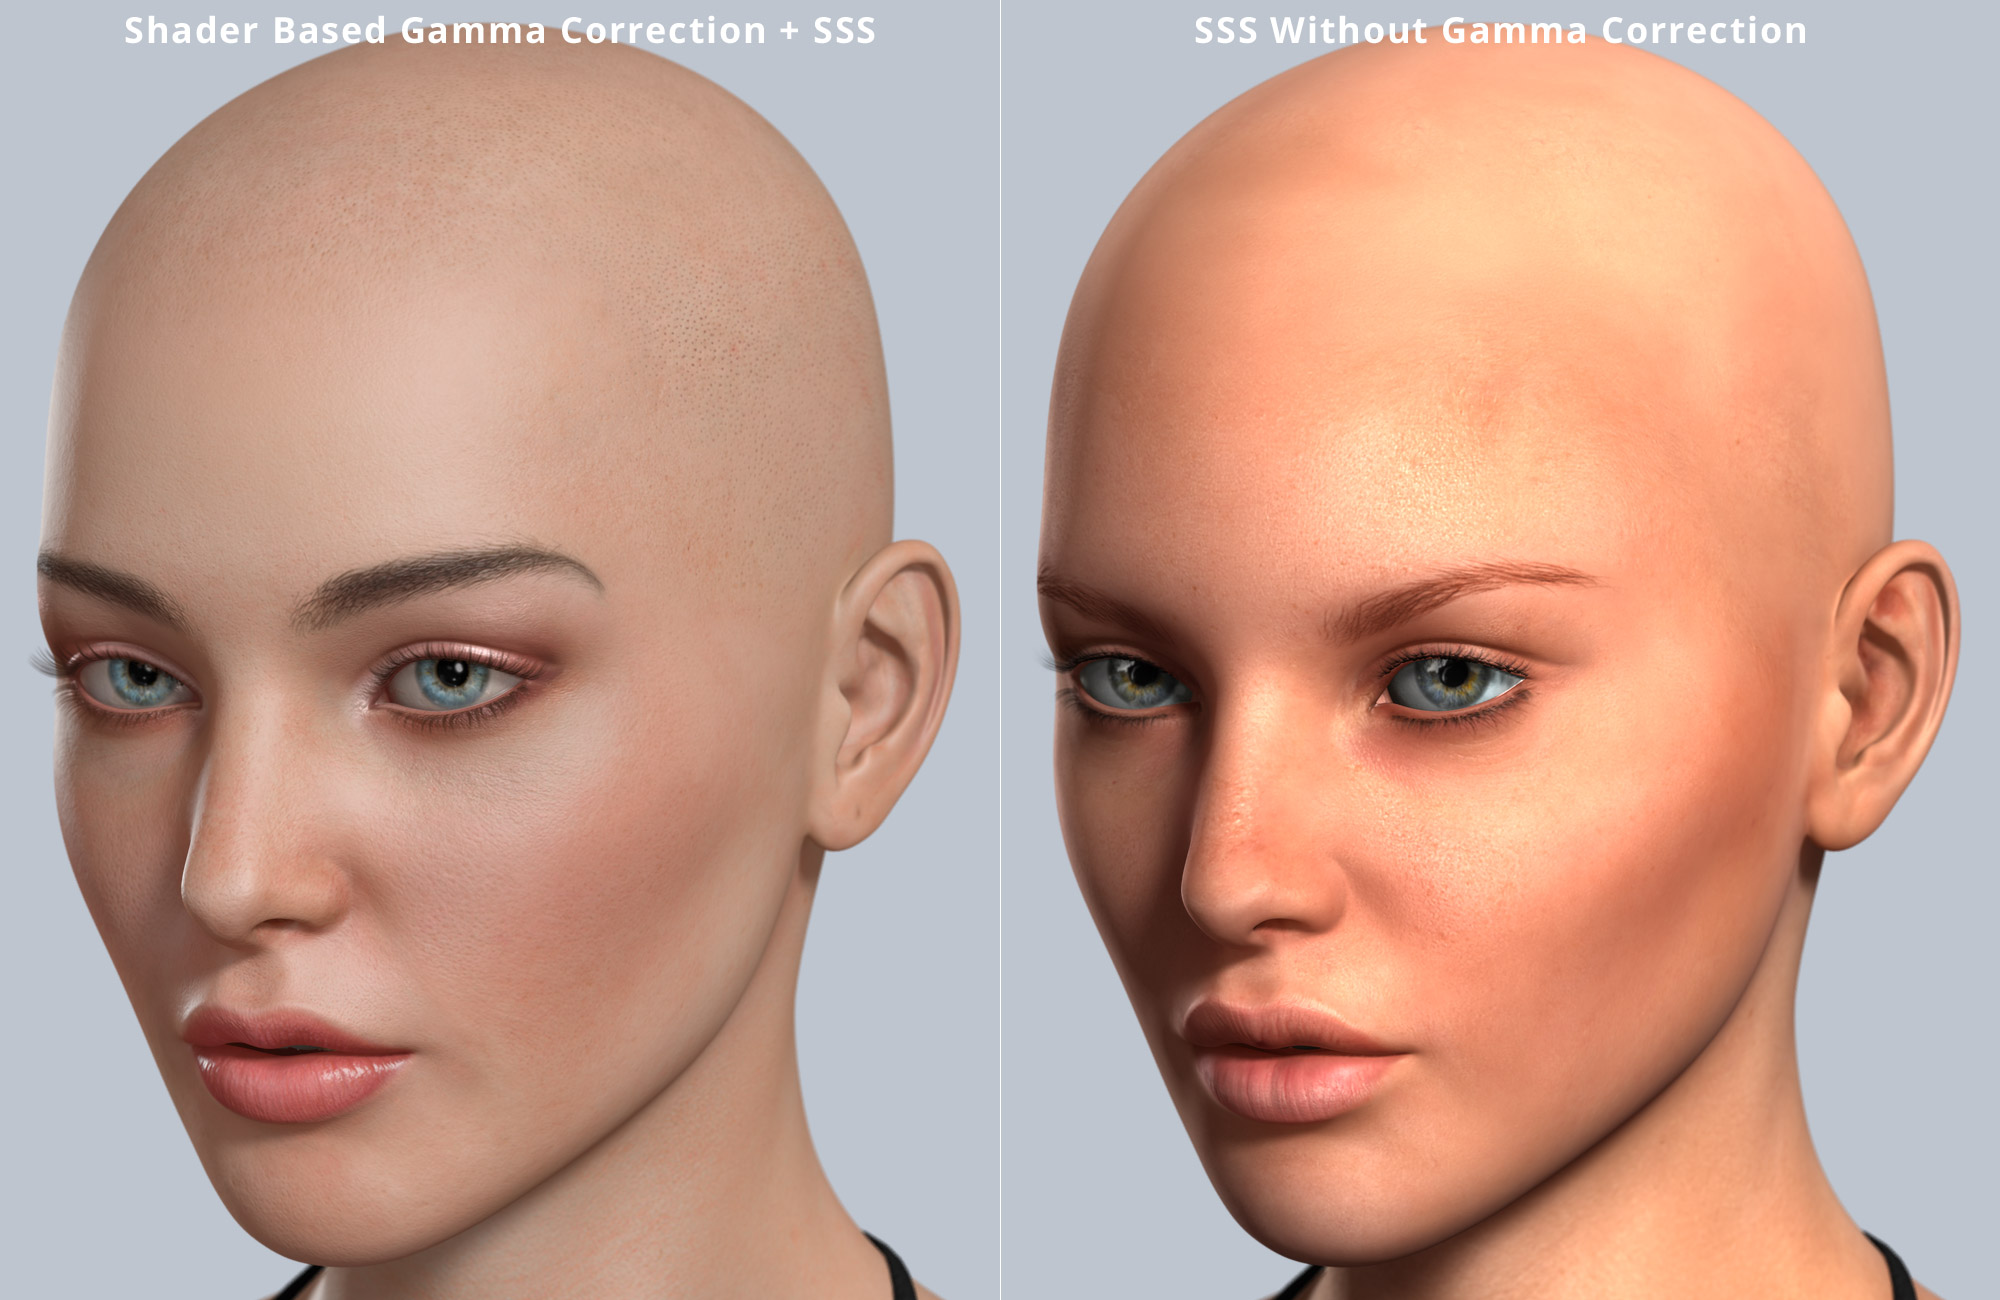 Realism with DAZ Studio and 3Delight - Gamma Correction